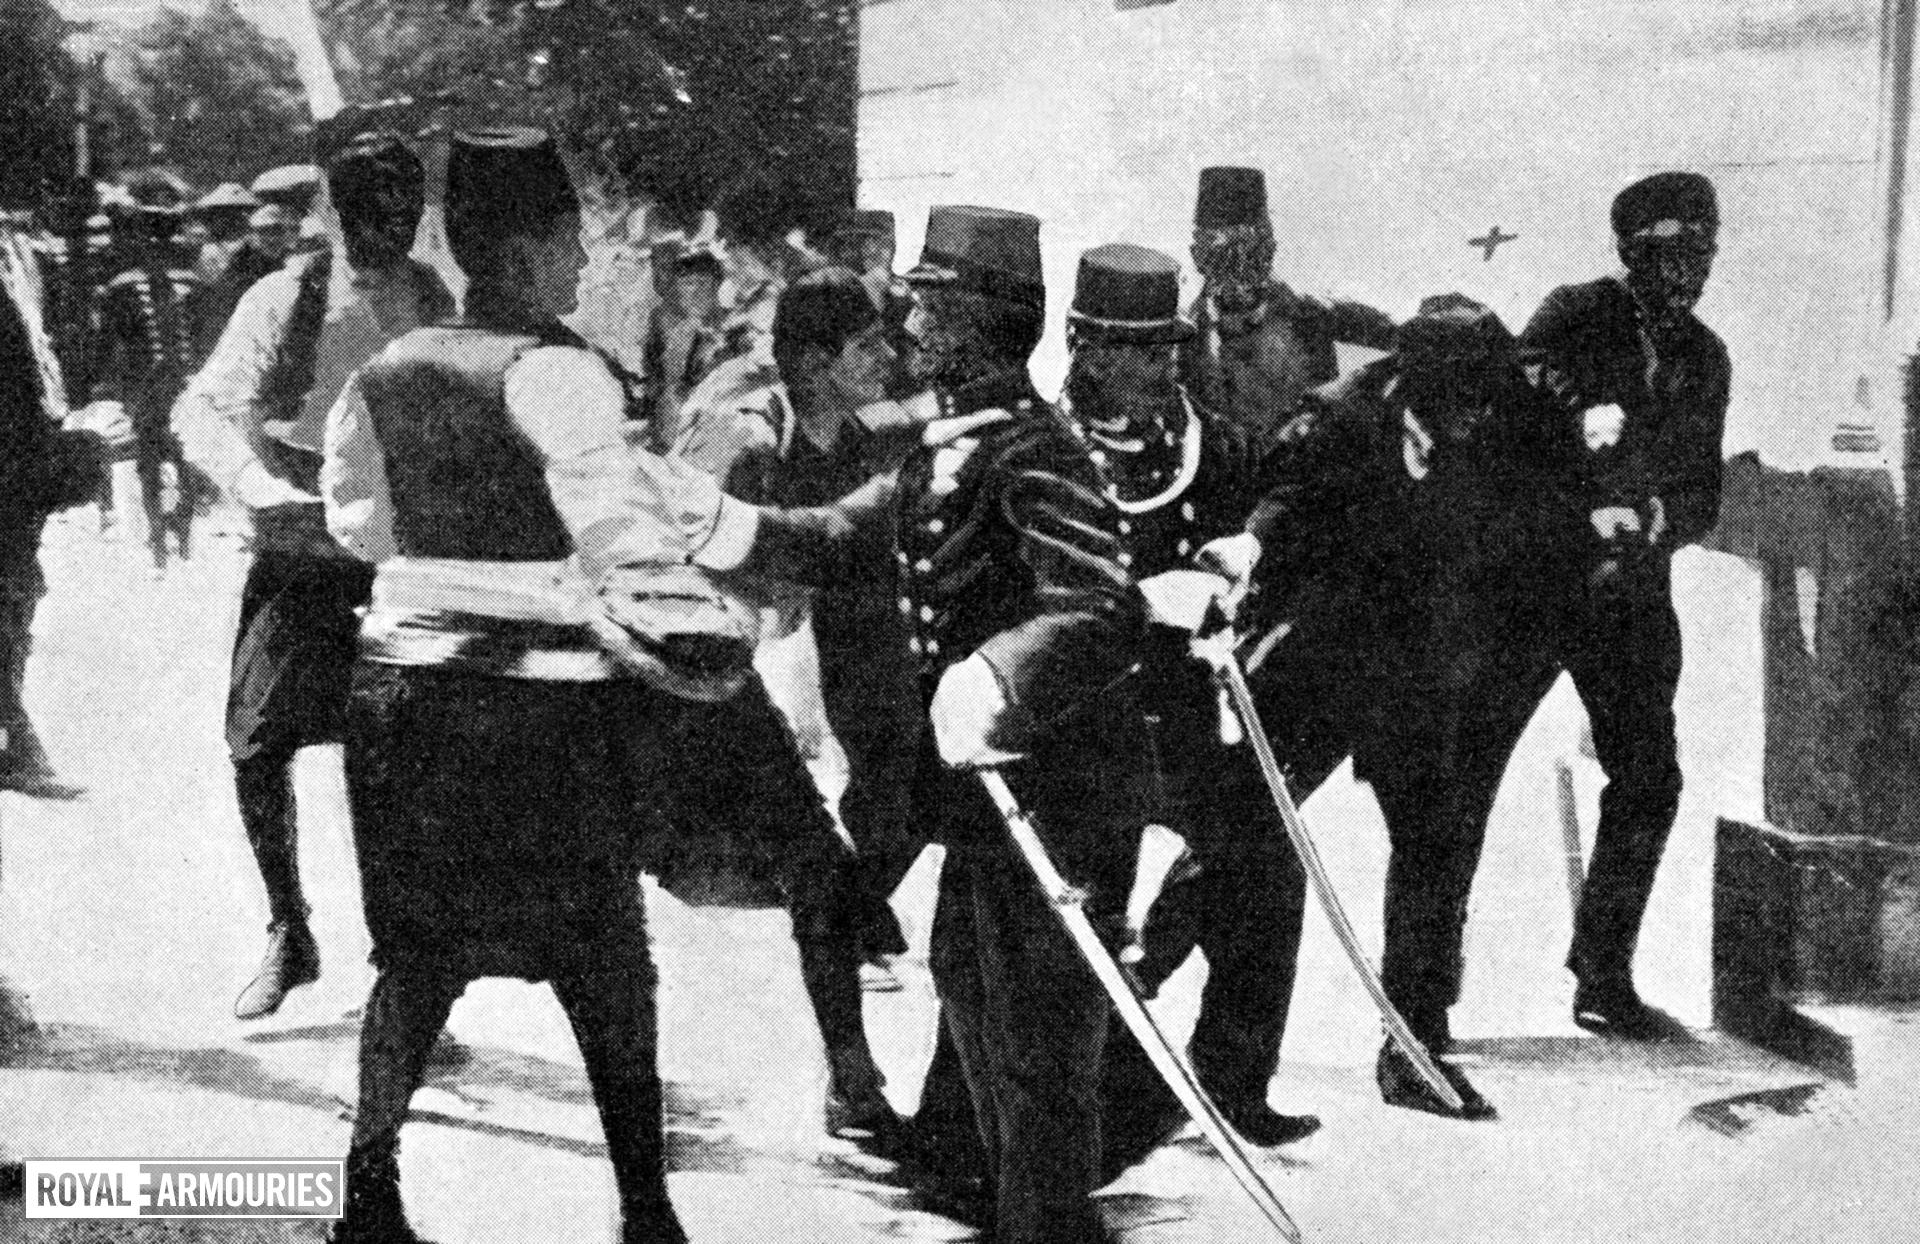 Photograph entitled , 'Arrest of Princeps, assassin of the Archduke Francis Ferdinand and the Duchess of Hohenberg,' page 3, chapter XXXVI taken from the Times History of the War Volume 2, printed and published by the Times, Printing House Square, London. 1915.